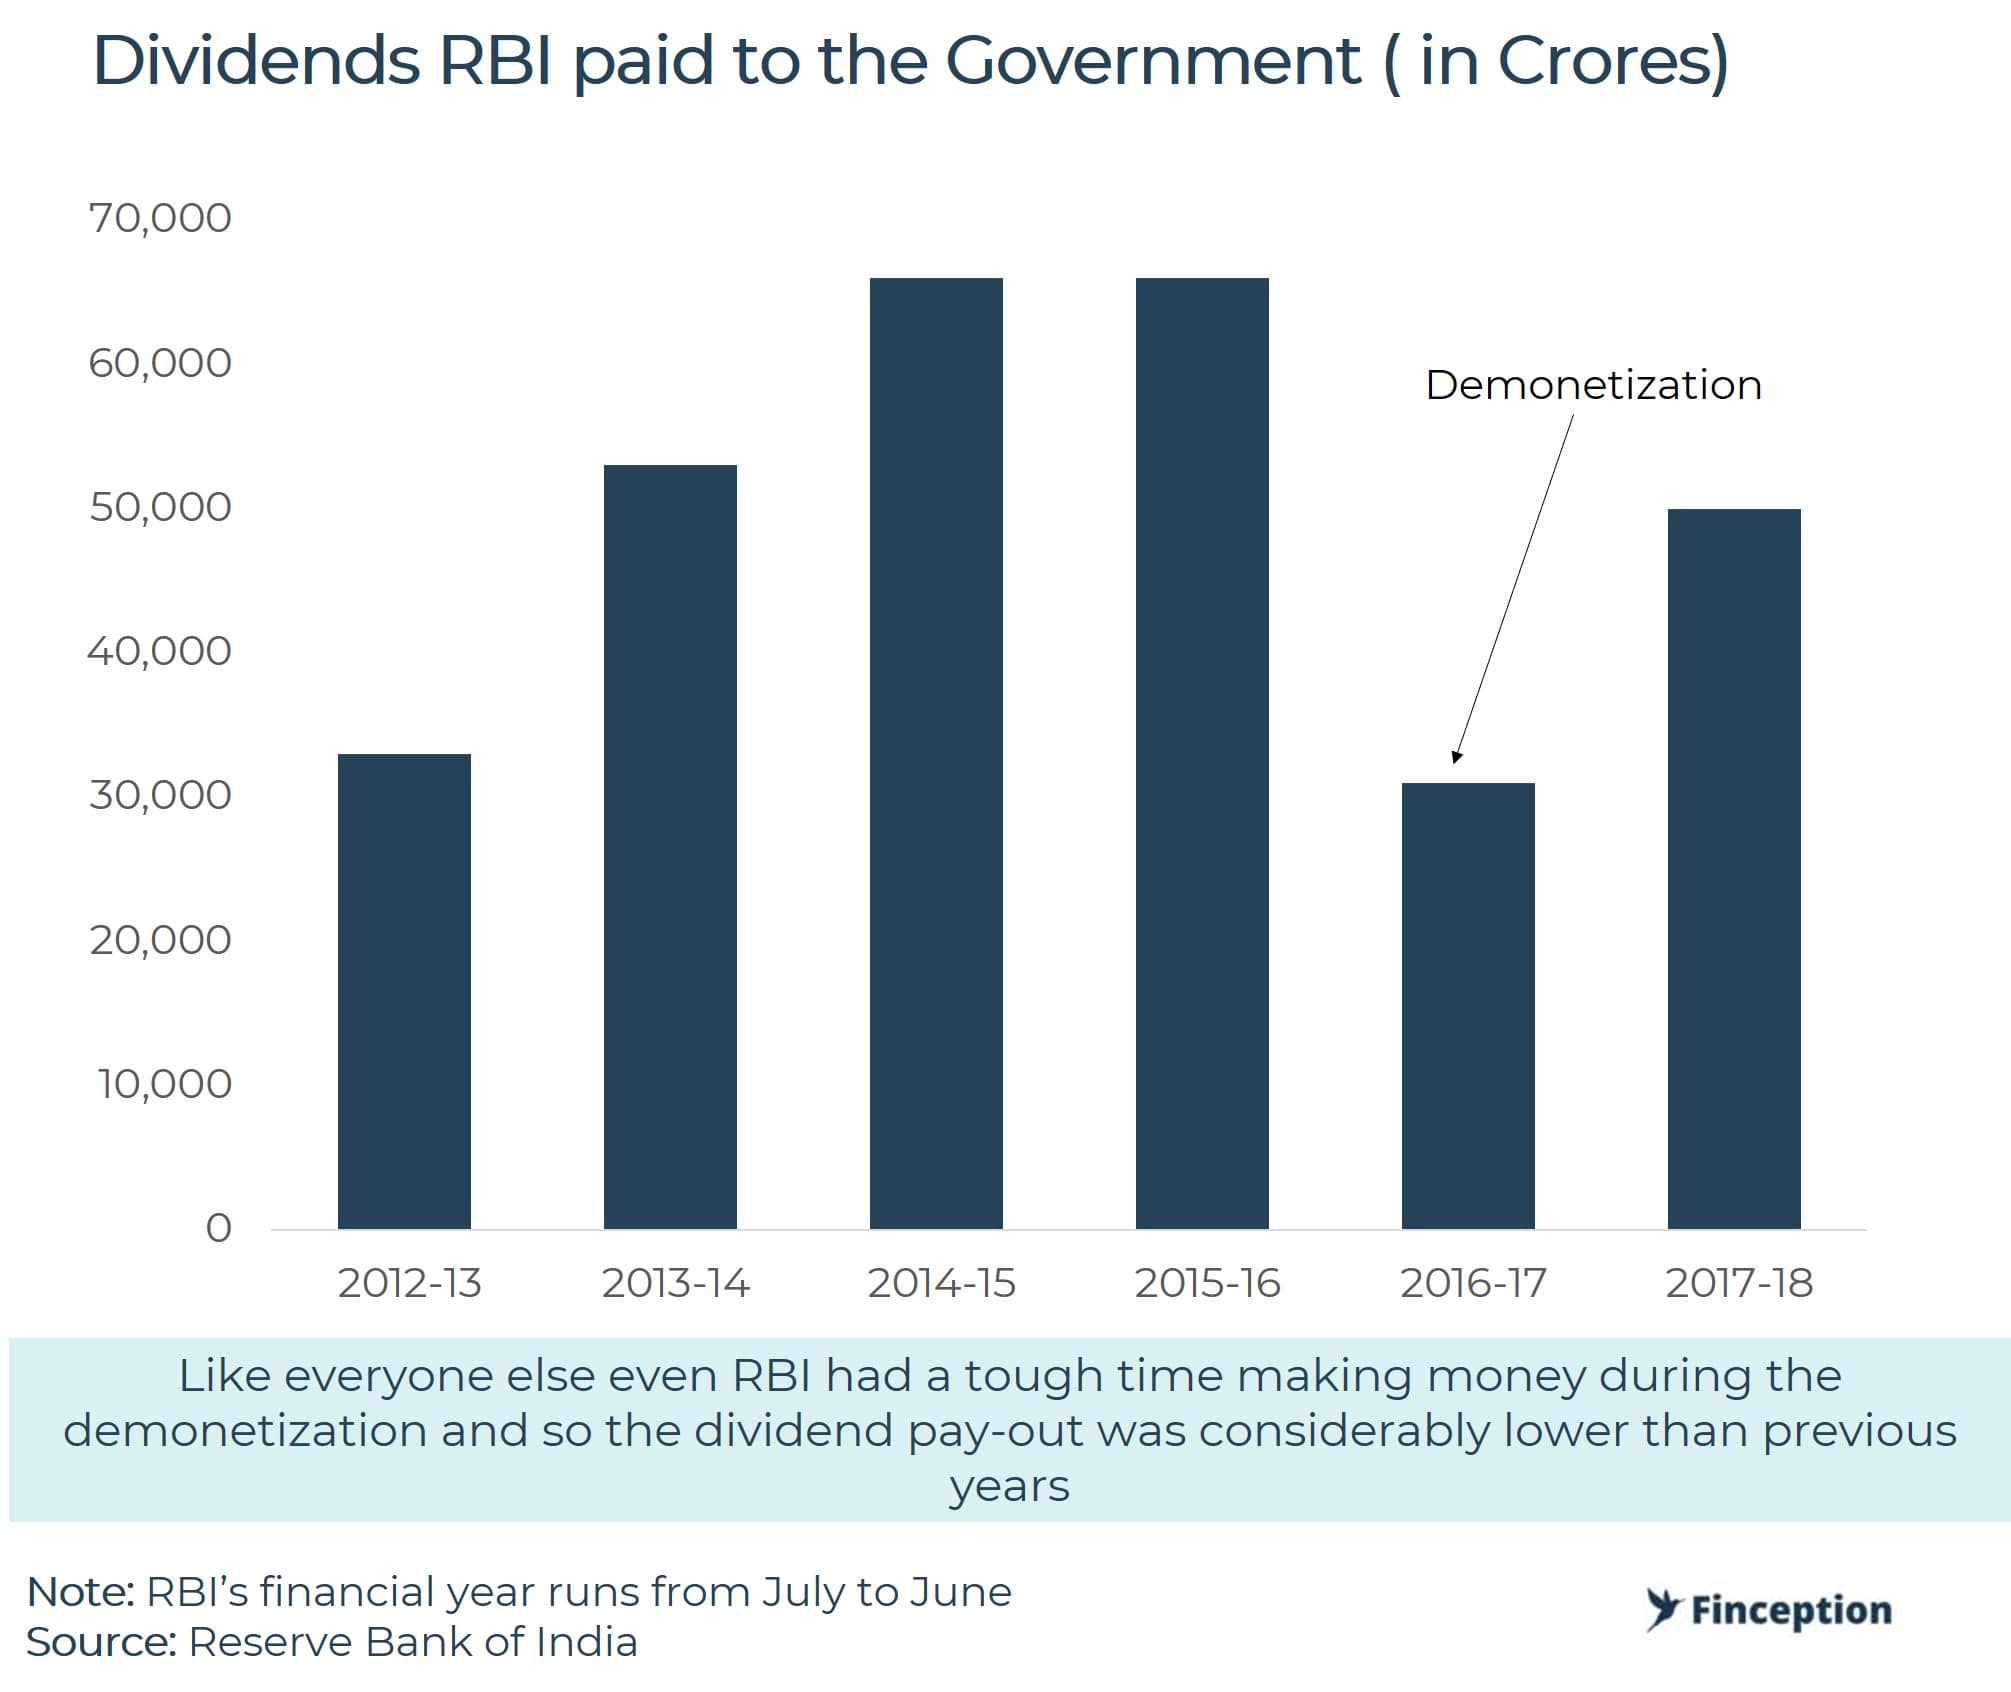 IRBI pays out Dividends to government every year